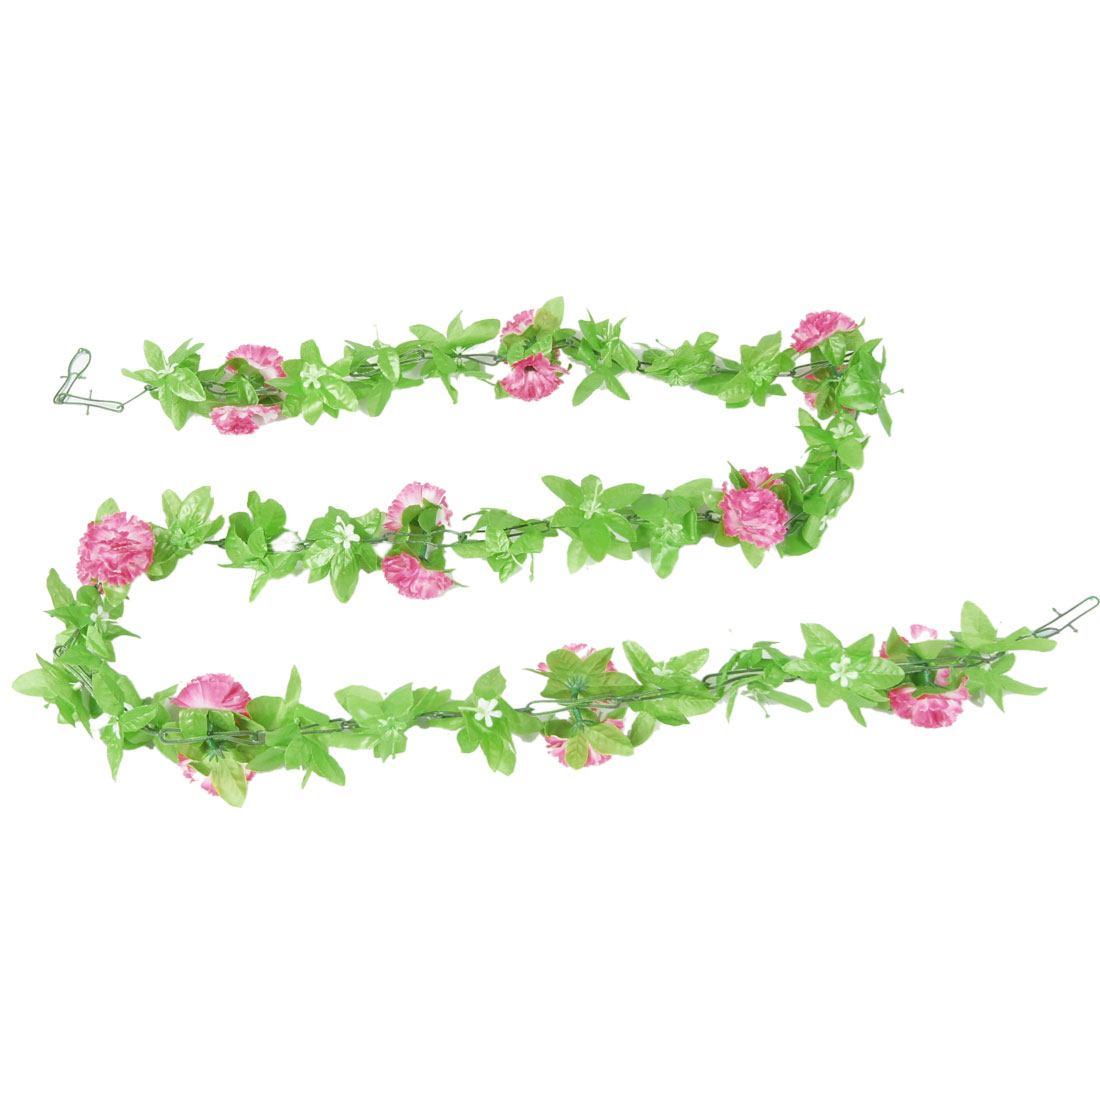 Festivals Wedding Green Leaves Fabric White Pink Carnation Hanging Bouquet 2M